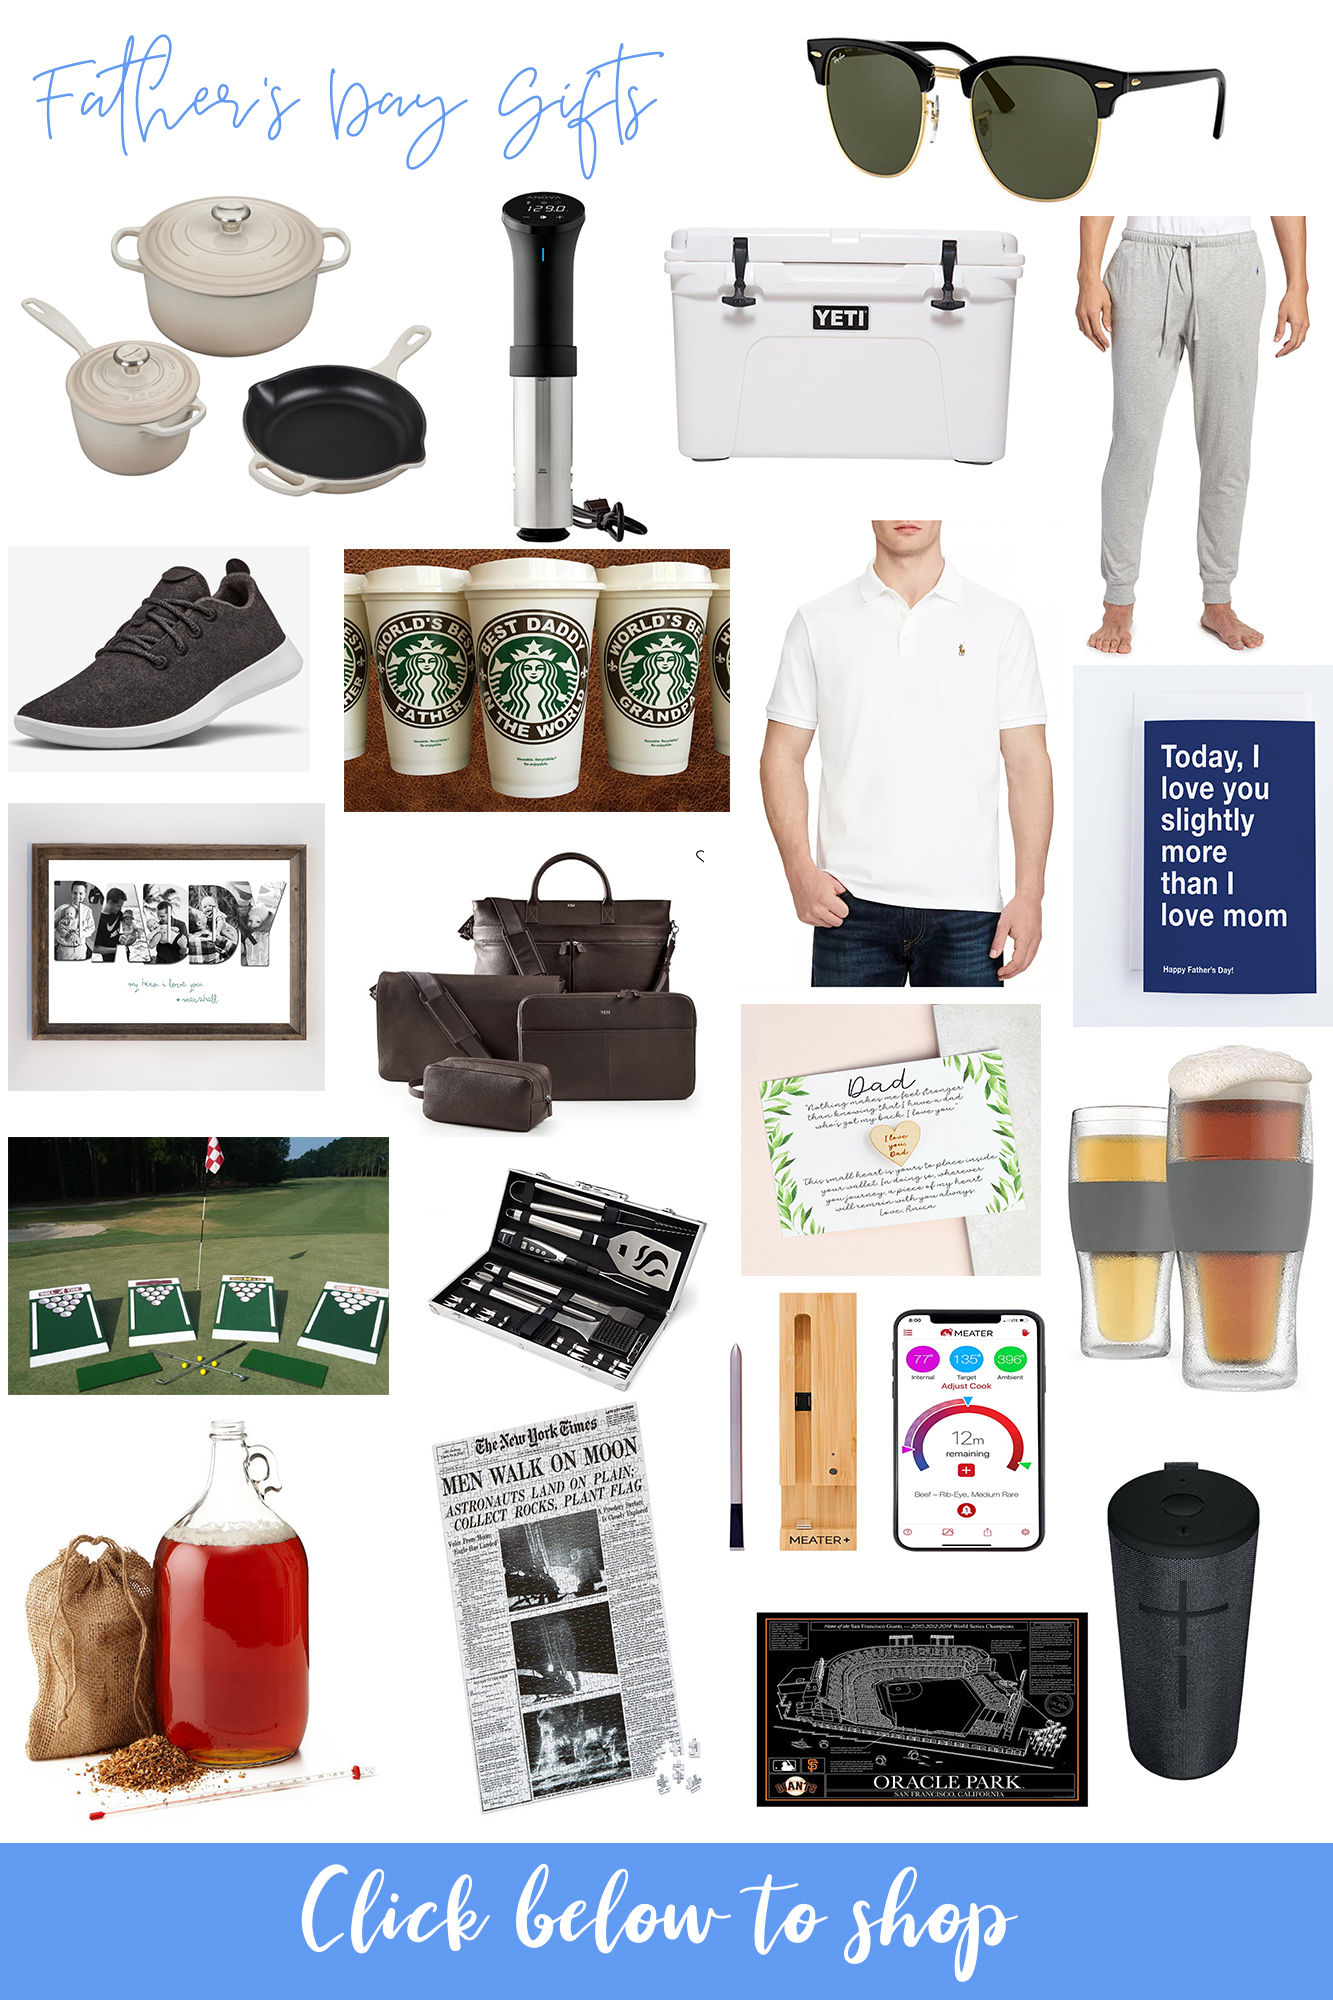 Last Minute Father's Day Gift Guide 2020 - Affordable, fun and sweet gifts to give the father figure in your life. Wide range of products and options!